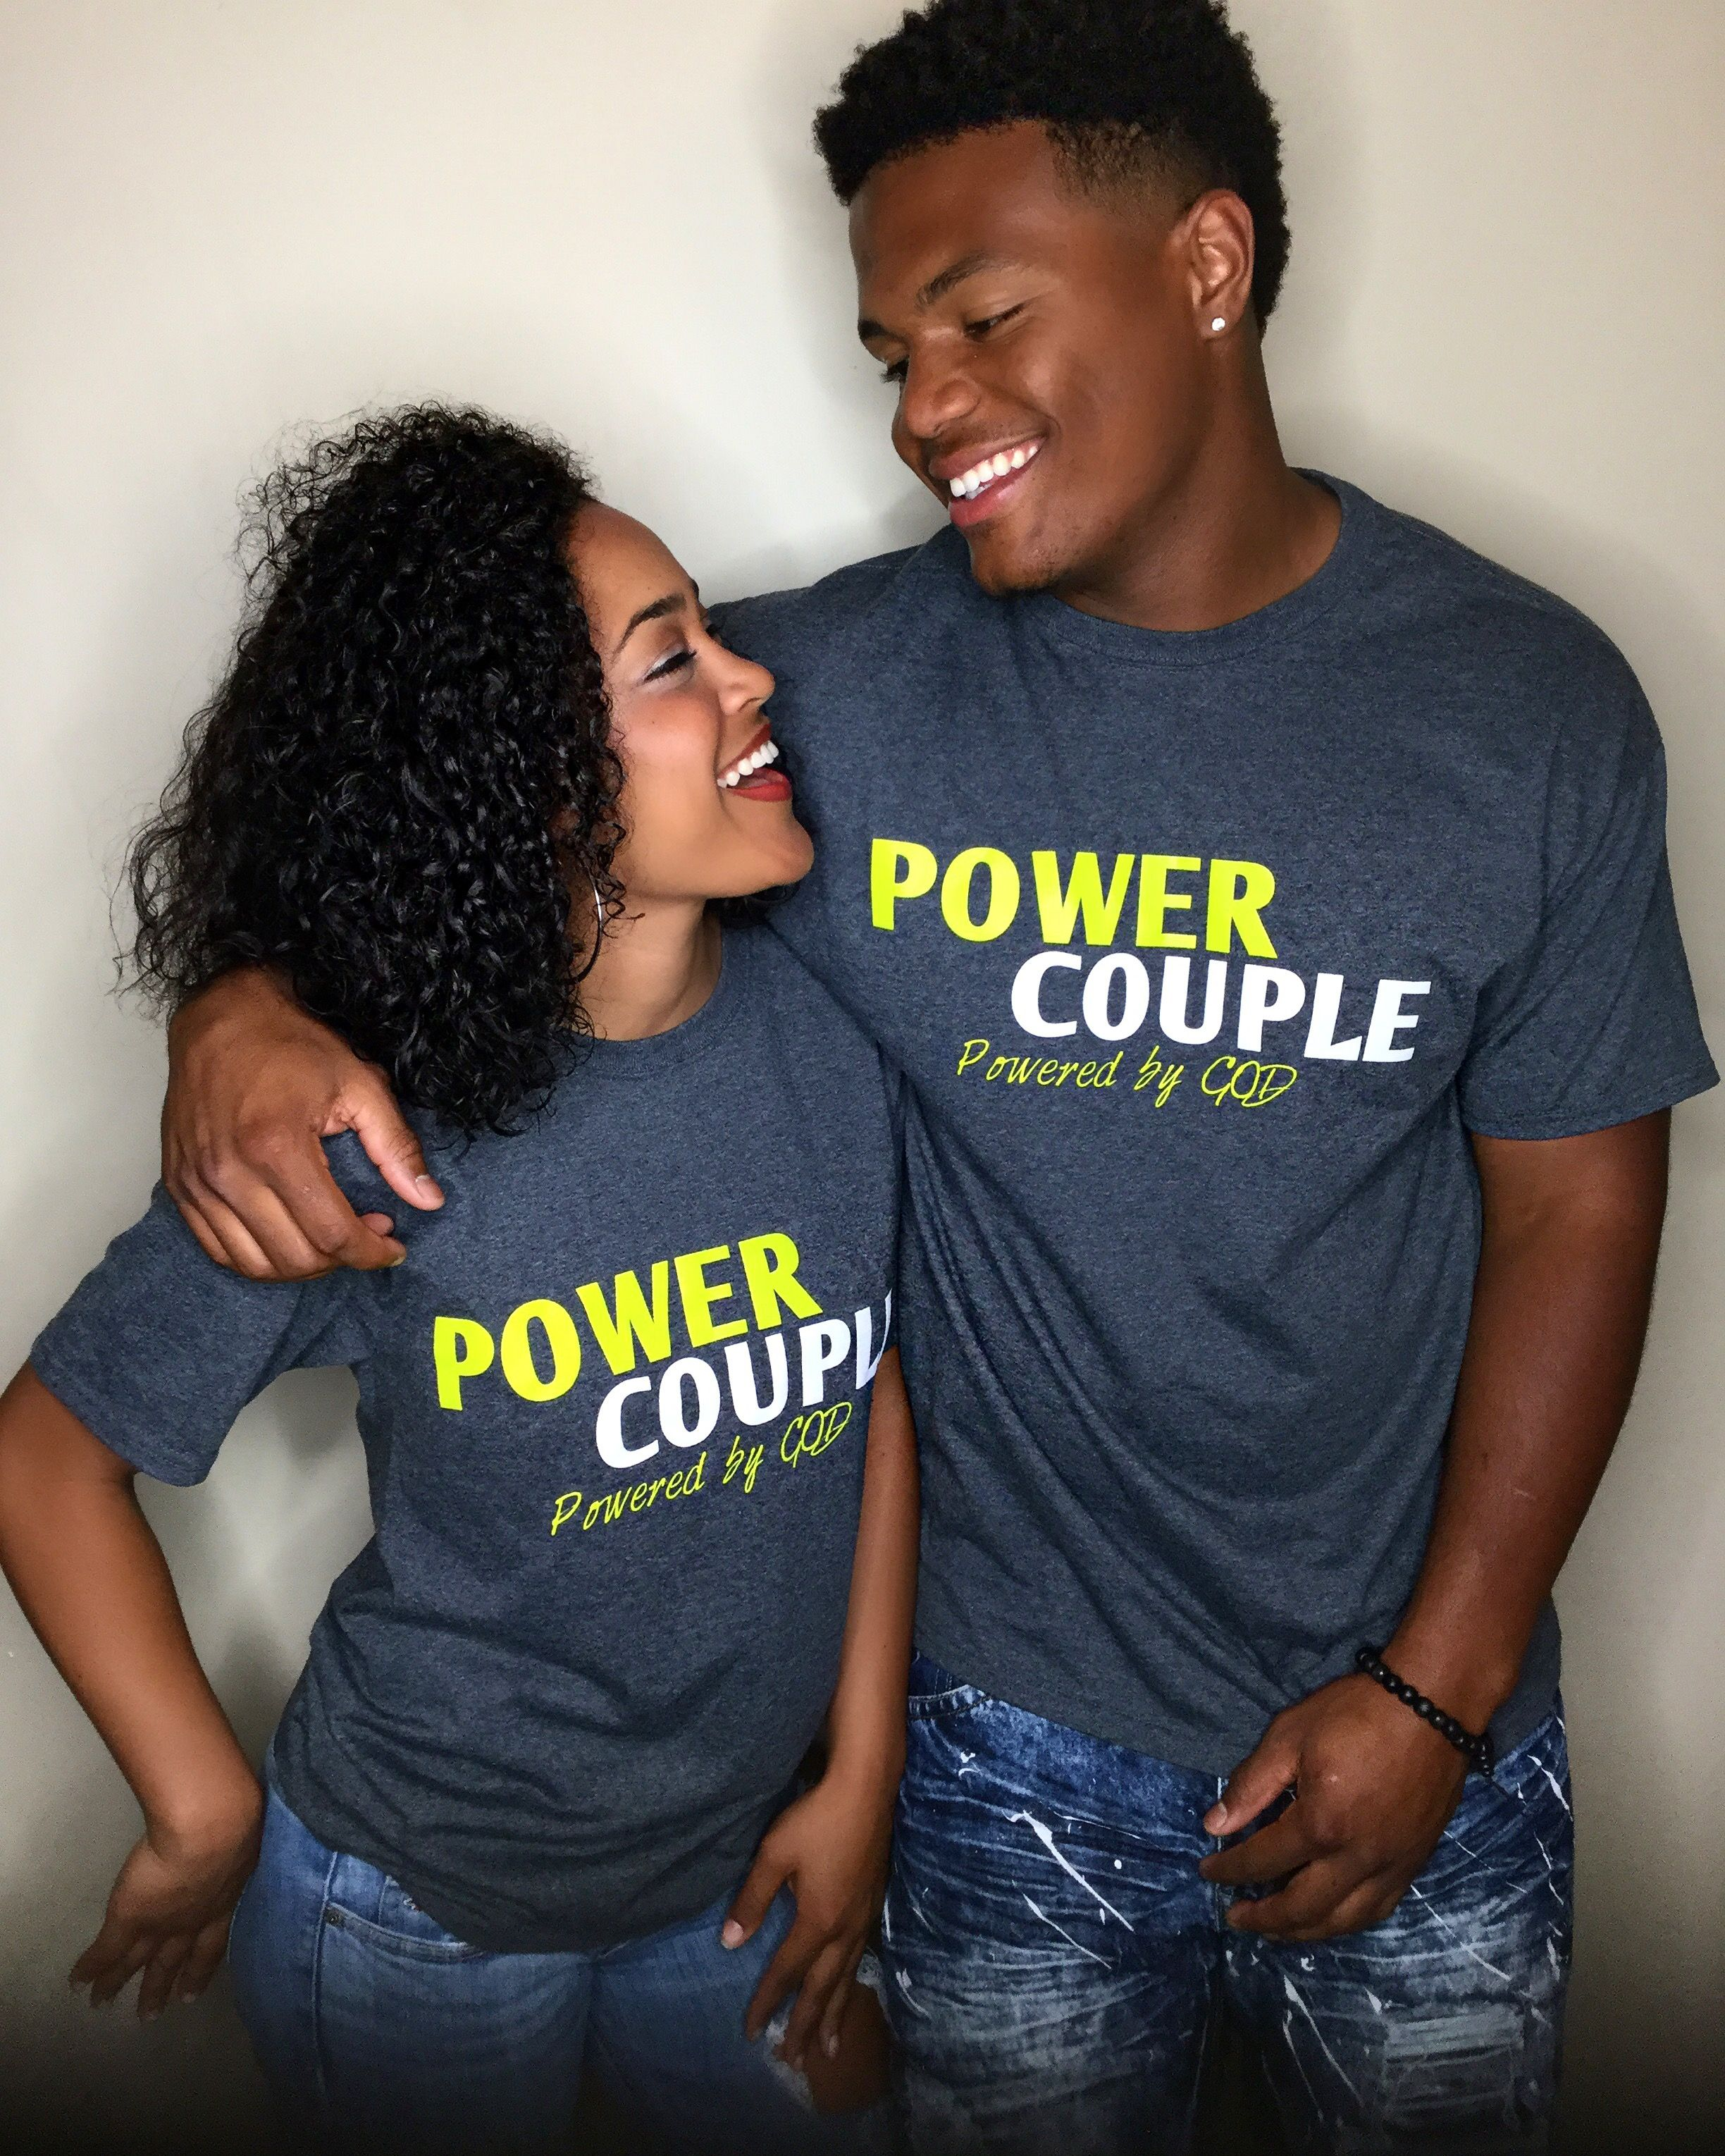 4de5bea29 Power Couple t shirts www.PowerCoupleClothing.com | US & LOVE ...